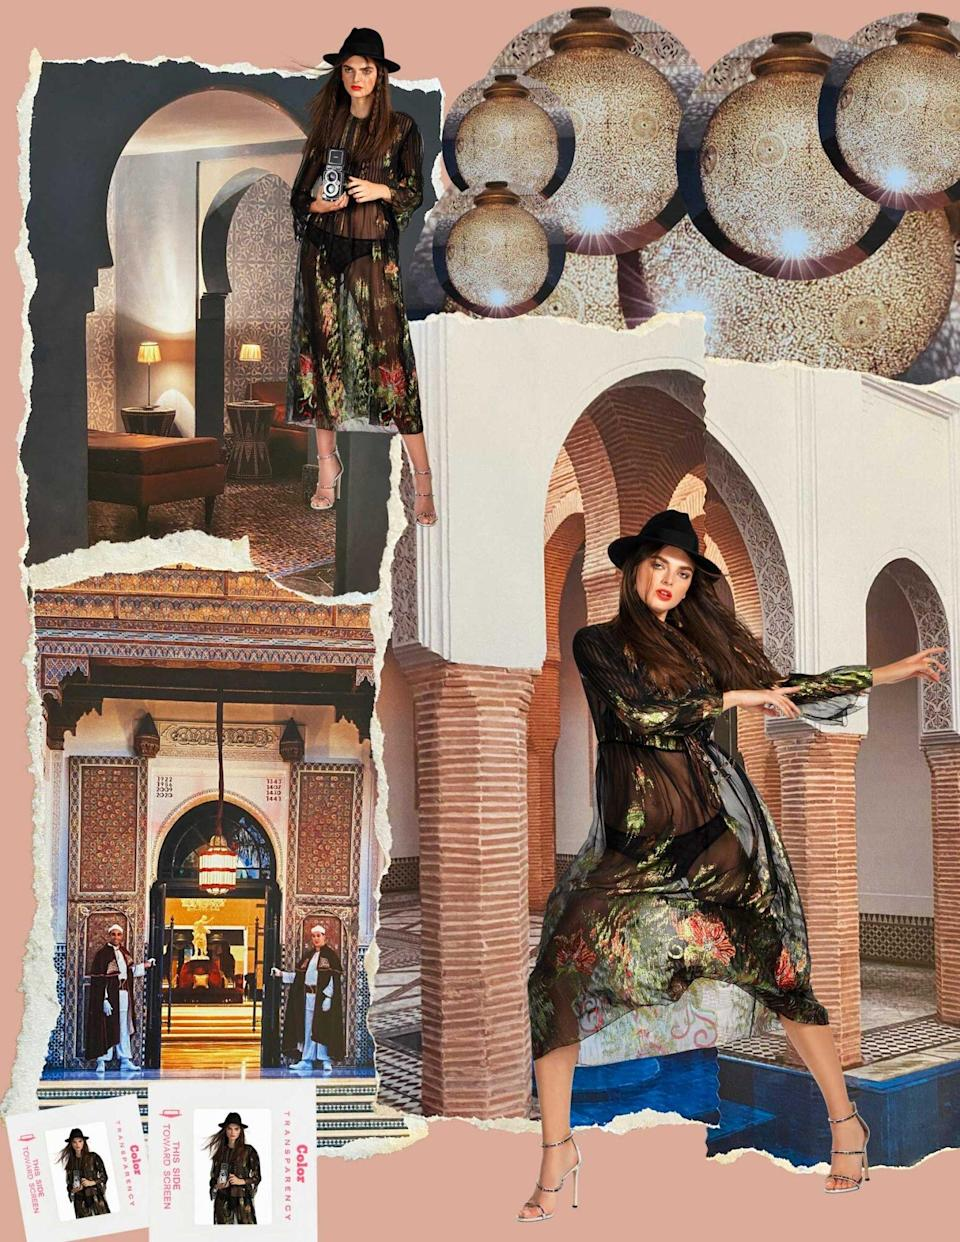 Photos of a model wearing a sheer black dress are superimposed over images of the hotel La Mamounia